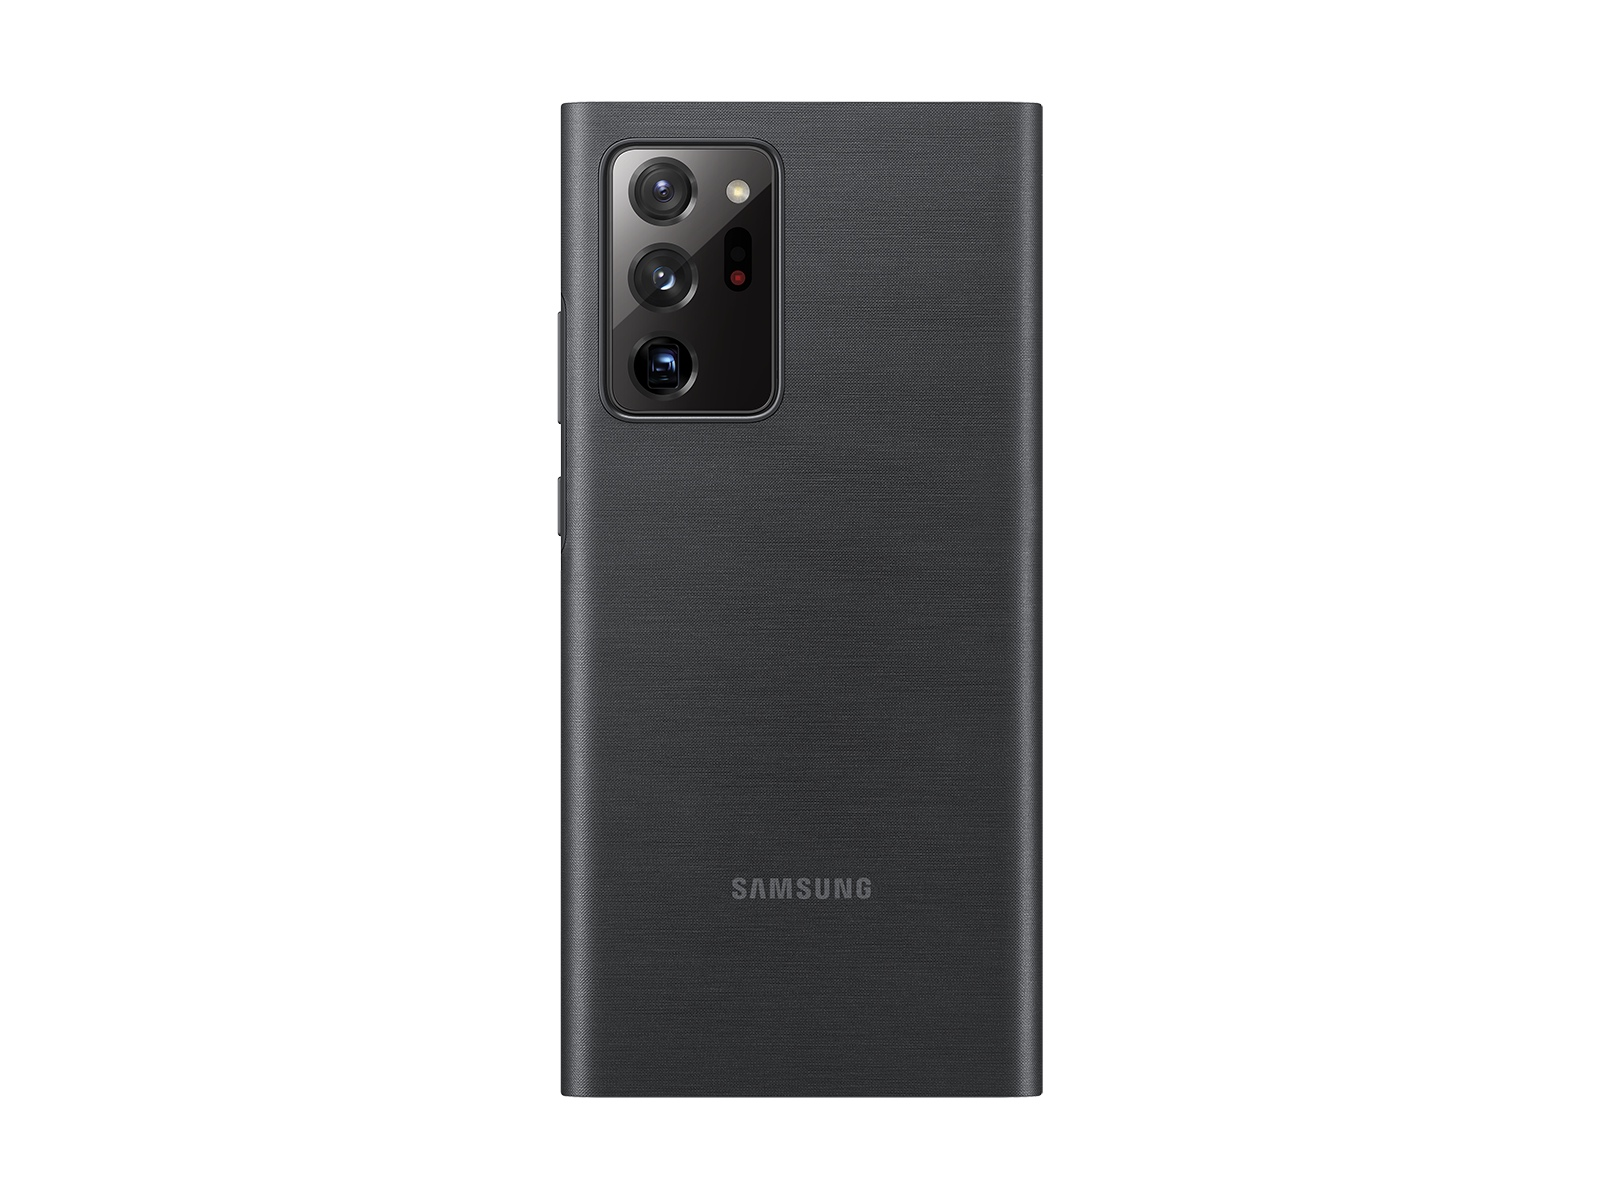 Thumbnail image of Galaxy Note20 Ultra 5G S-View Flip Cover, Black